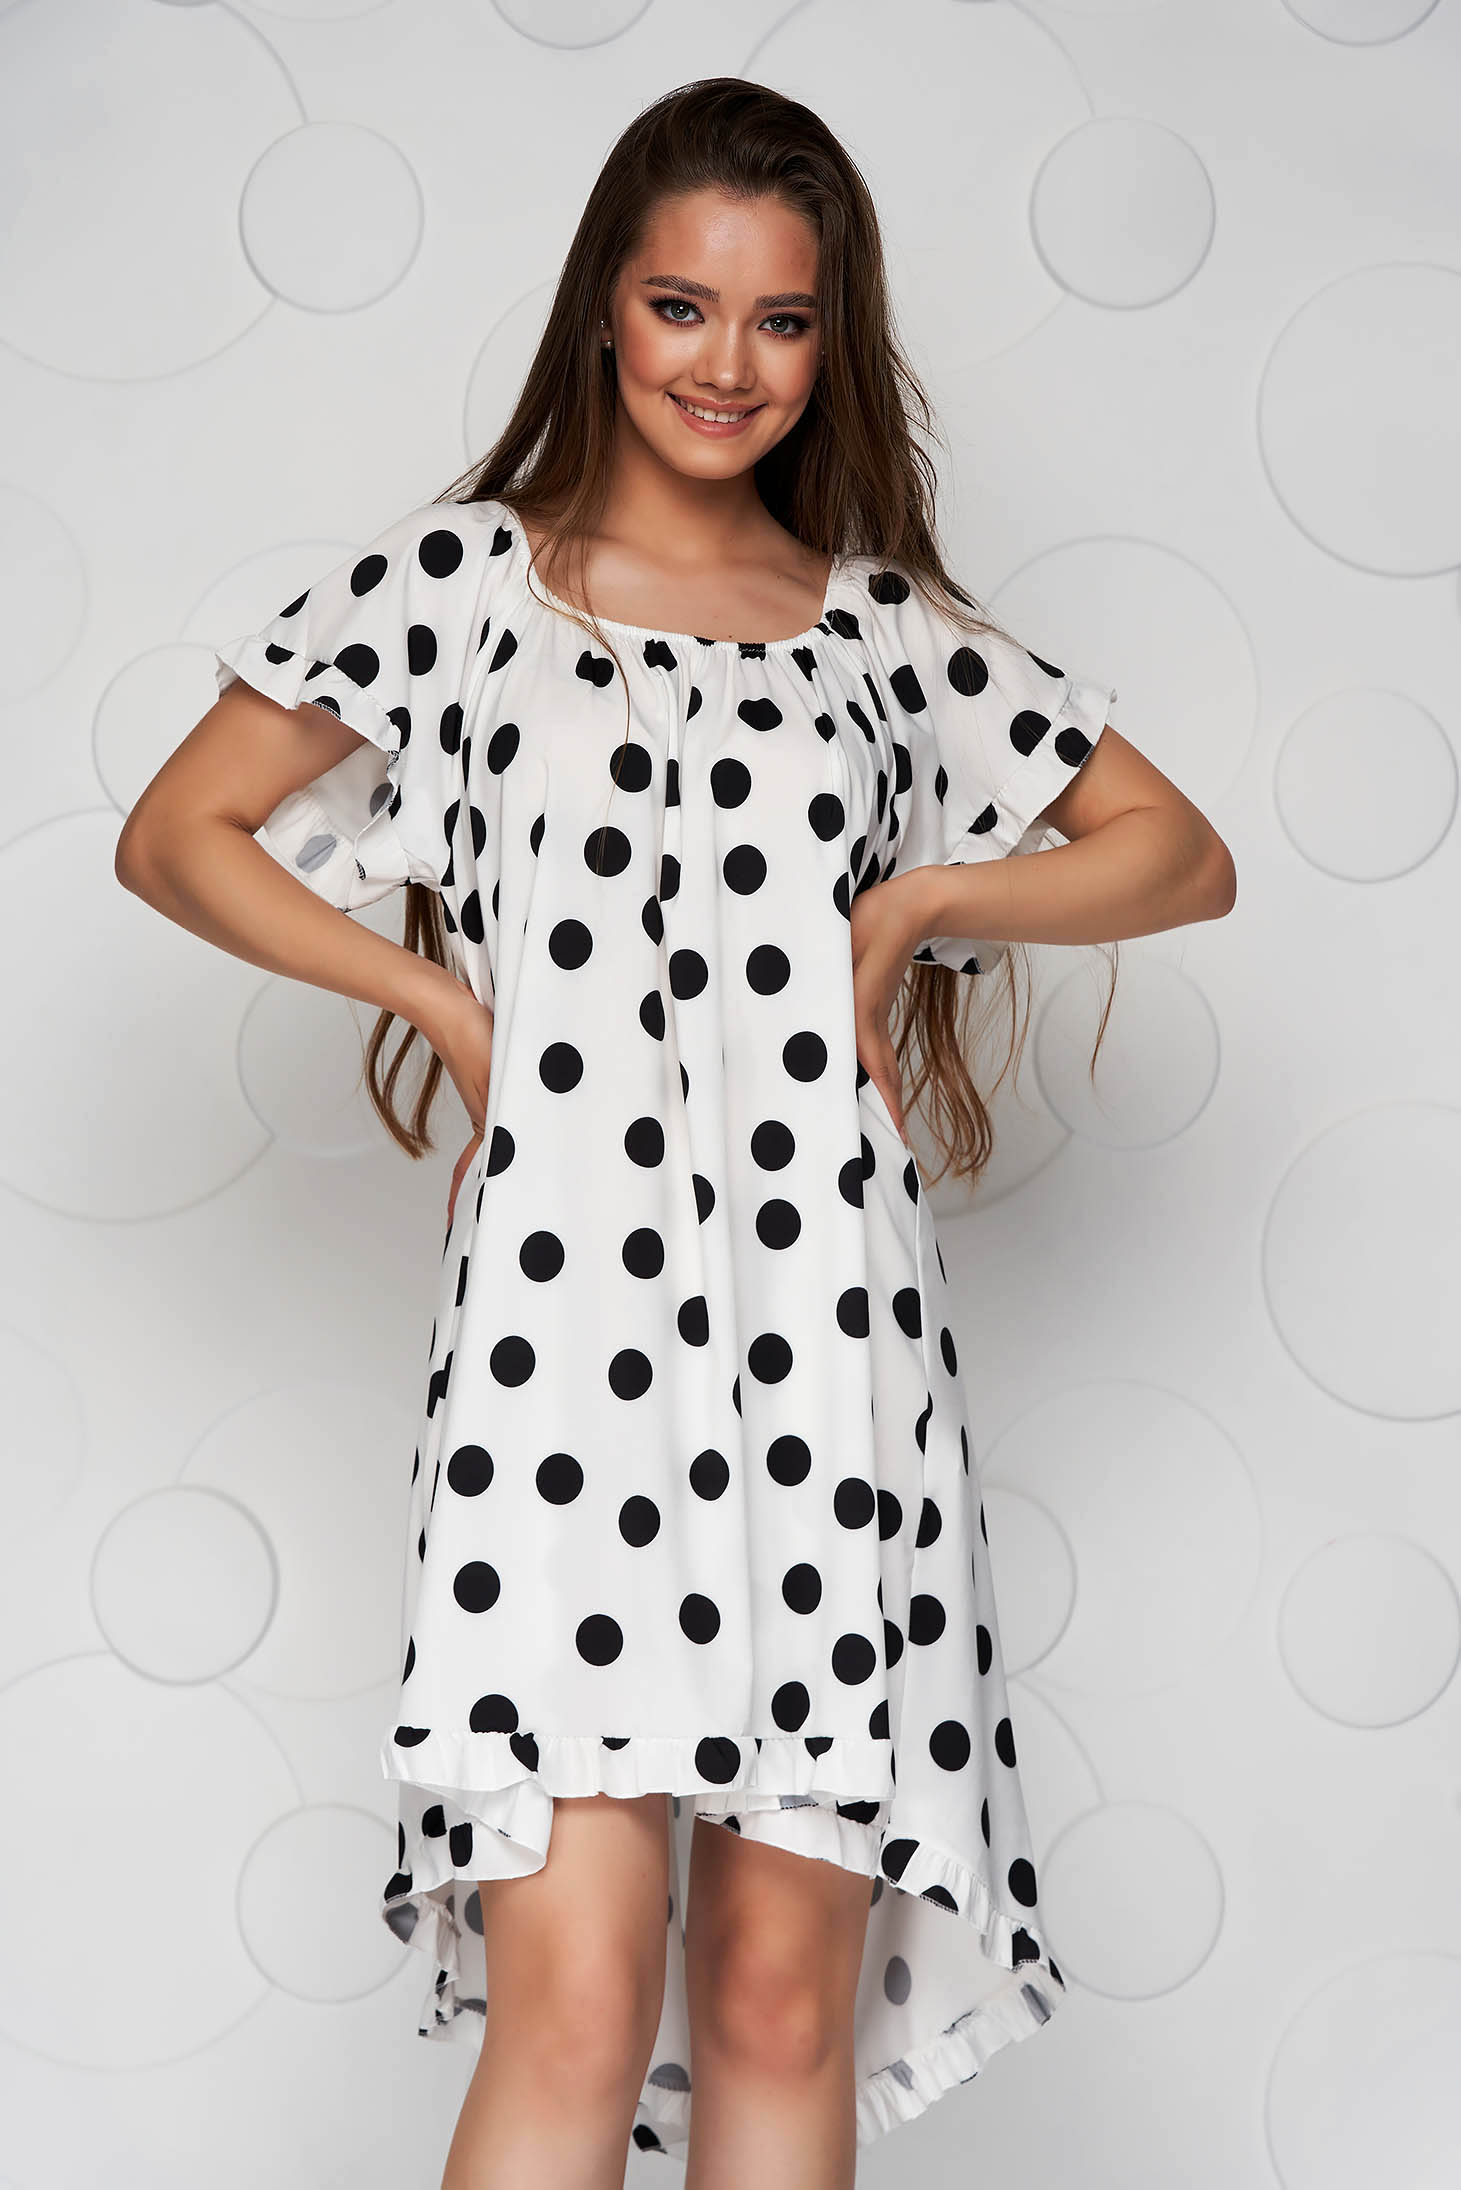 White dress dots print loose fit from elastic fabric elastic cleavage